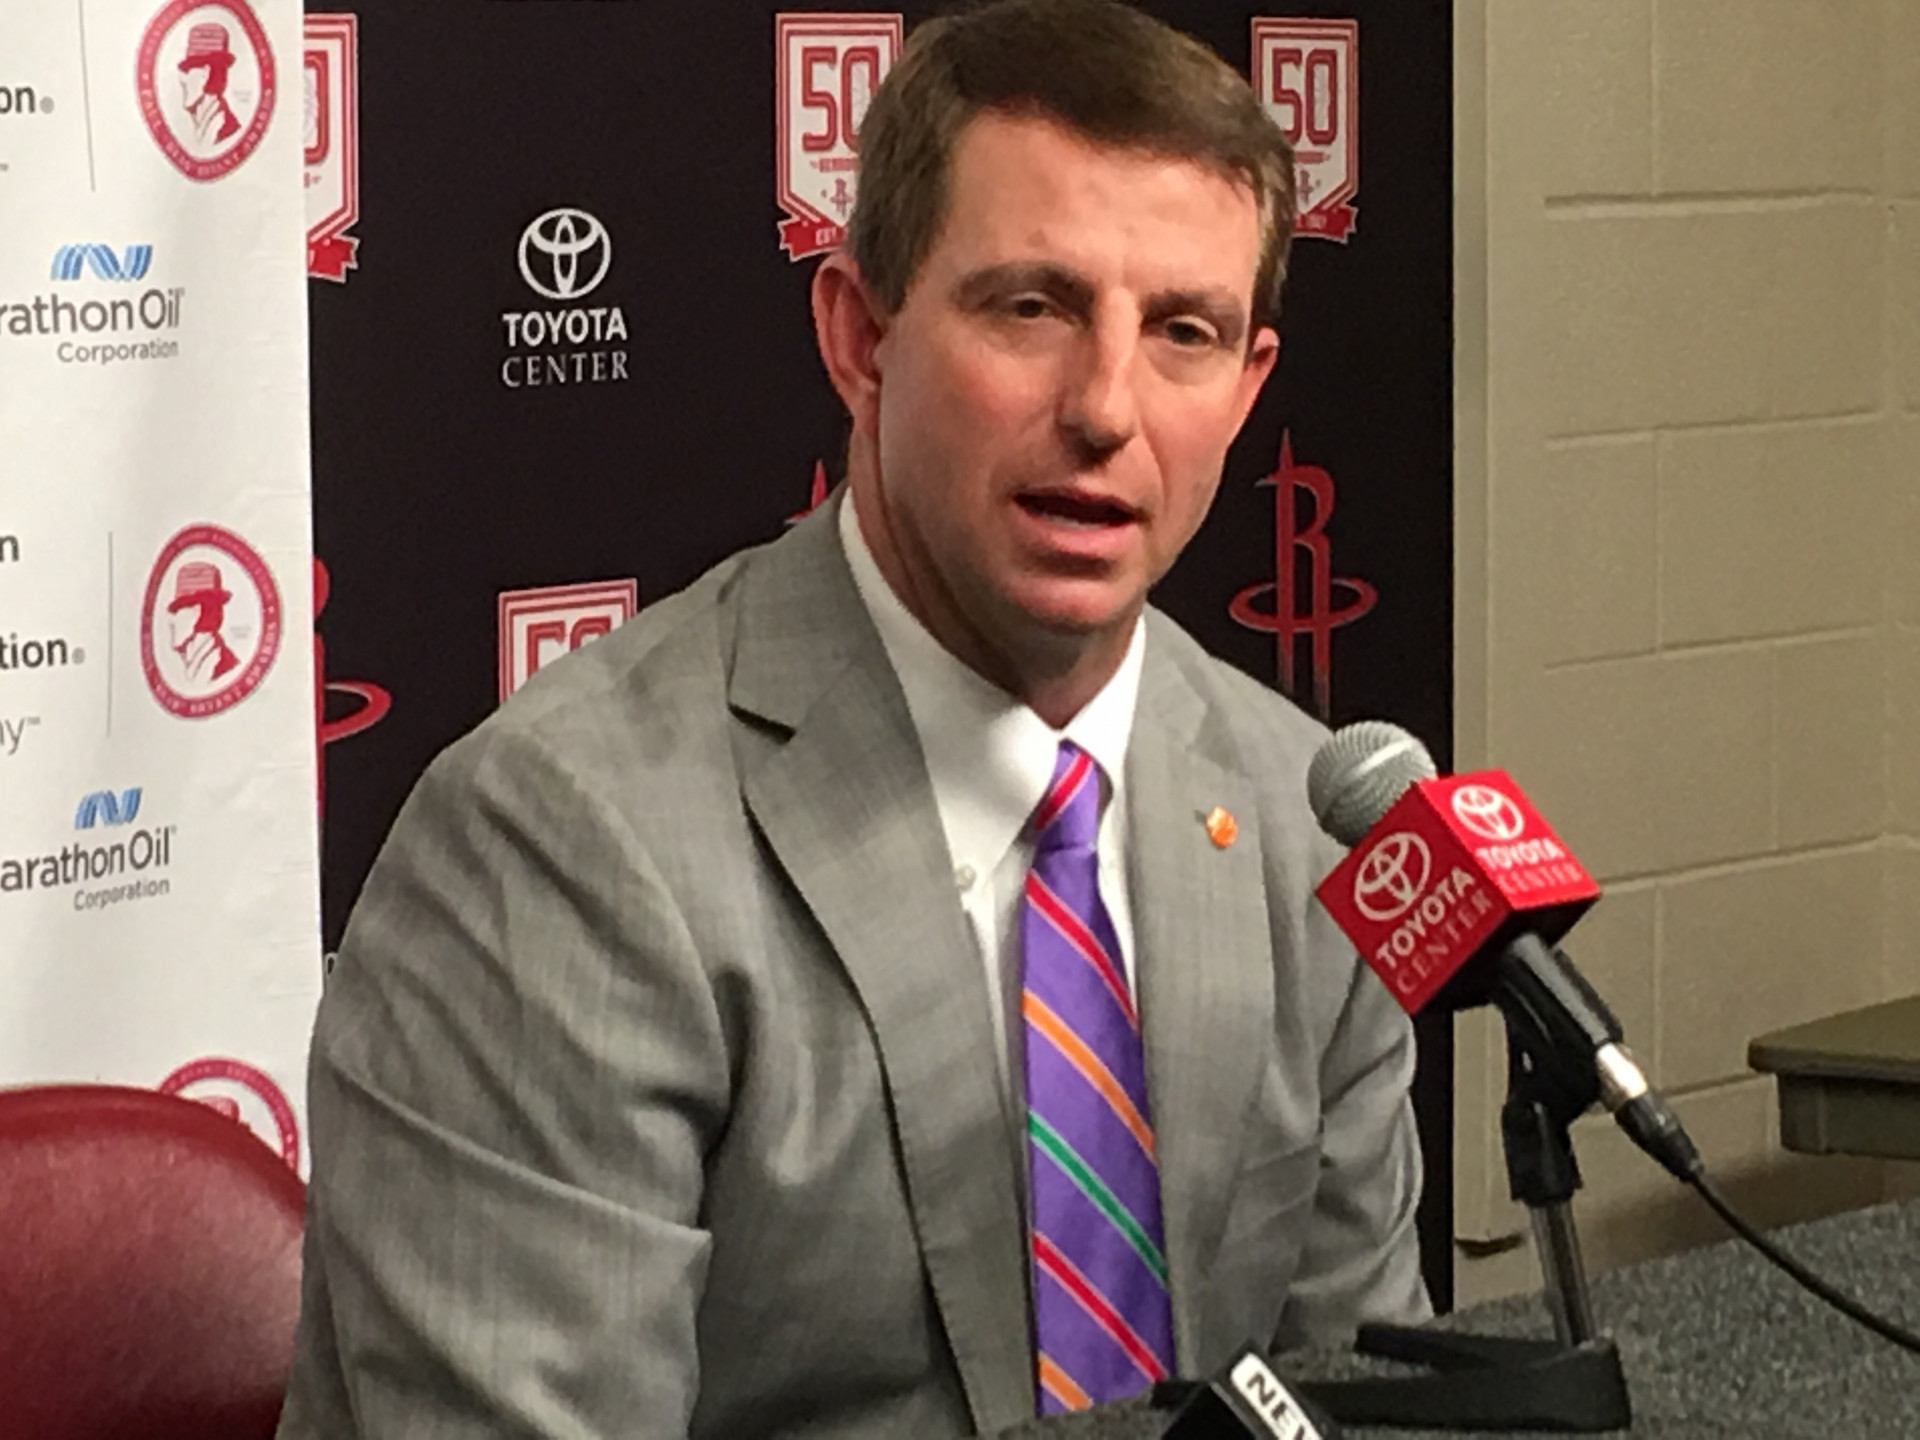 Dabo Swinney Talks to Media After Winning Second Straight Bryant Award (Dave Goren Photo)